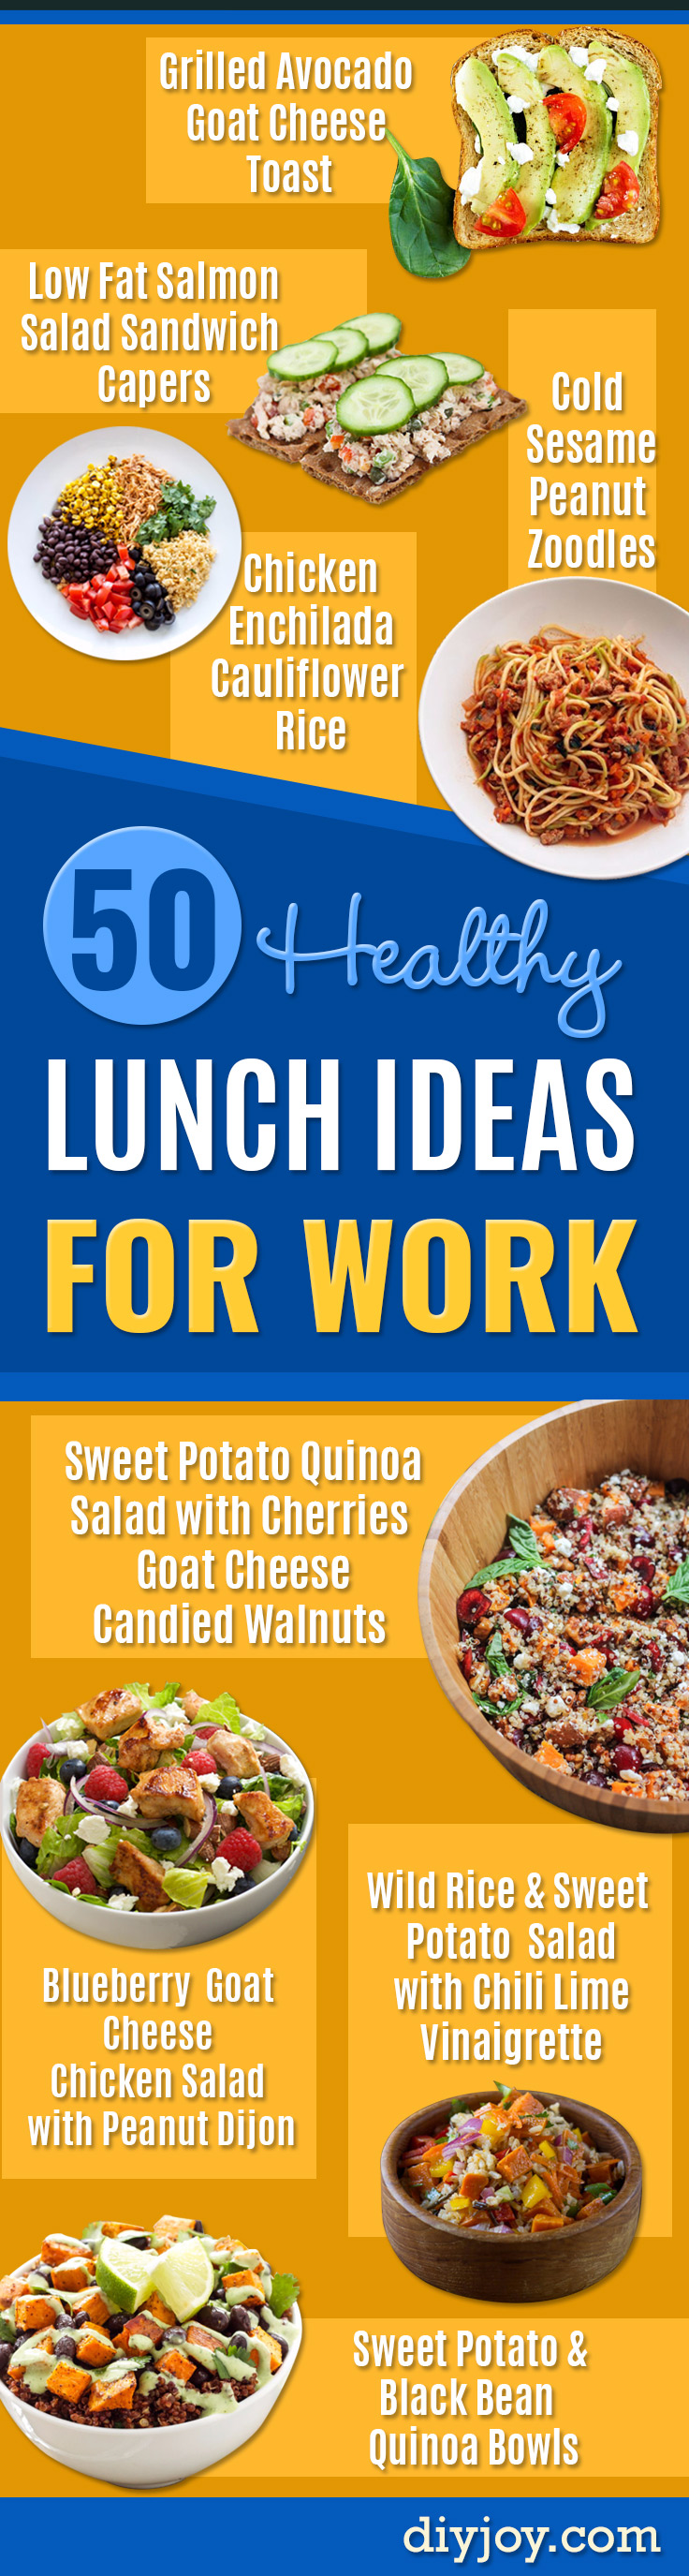 easy and healthy lunch ideas for work 8 healthy school lunch ideas